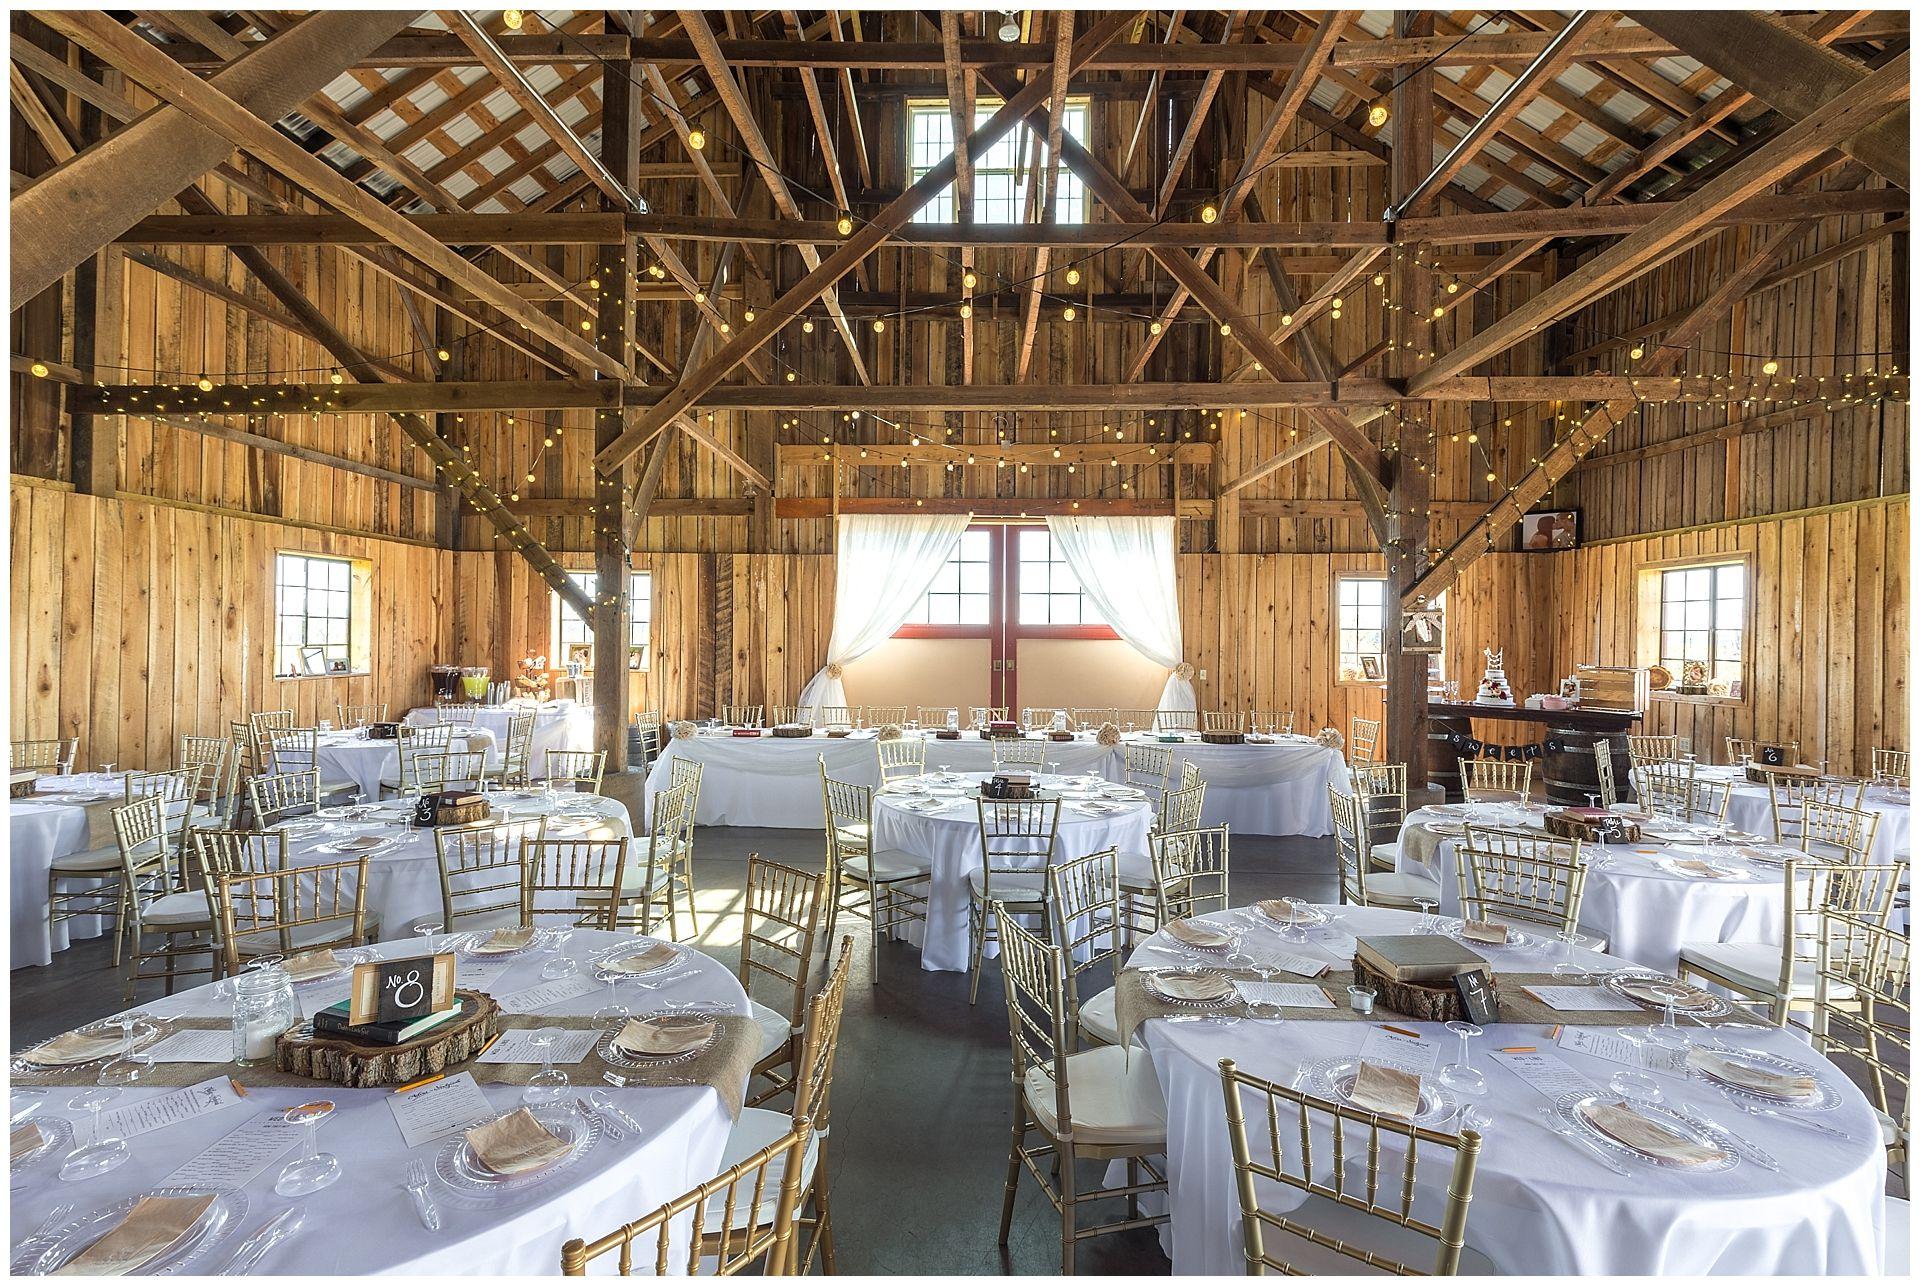 Beautiful And Rustic Wedding Venue In Georgetown Kentucky The Event Barn At Evans Orchard Is An Amazing Option For Your Upcoming Or Reception